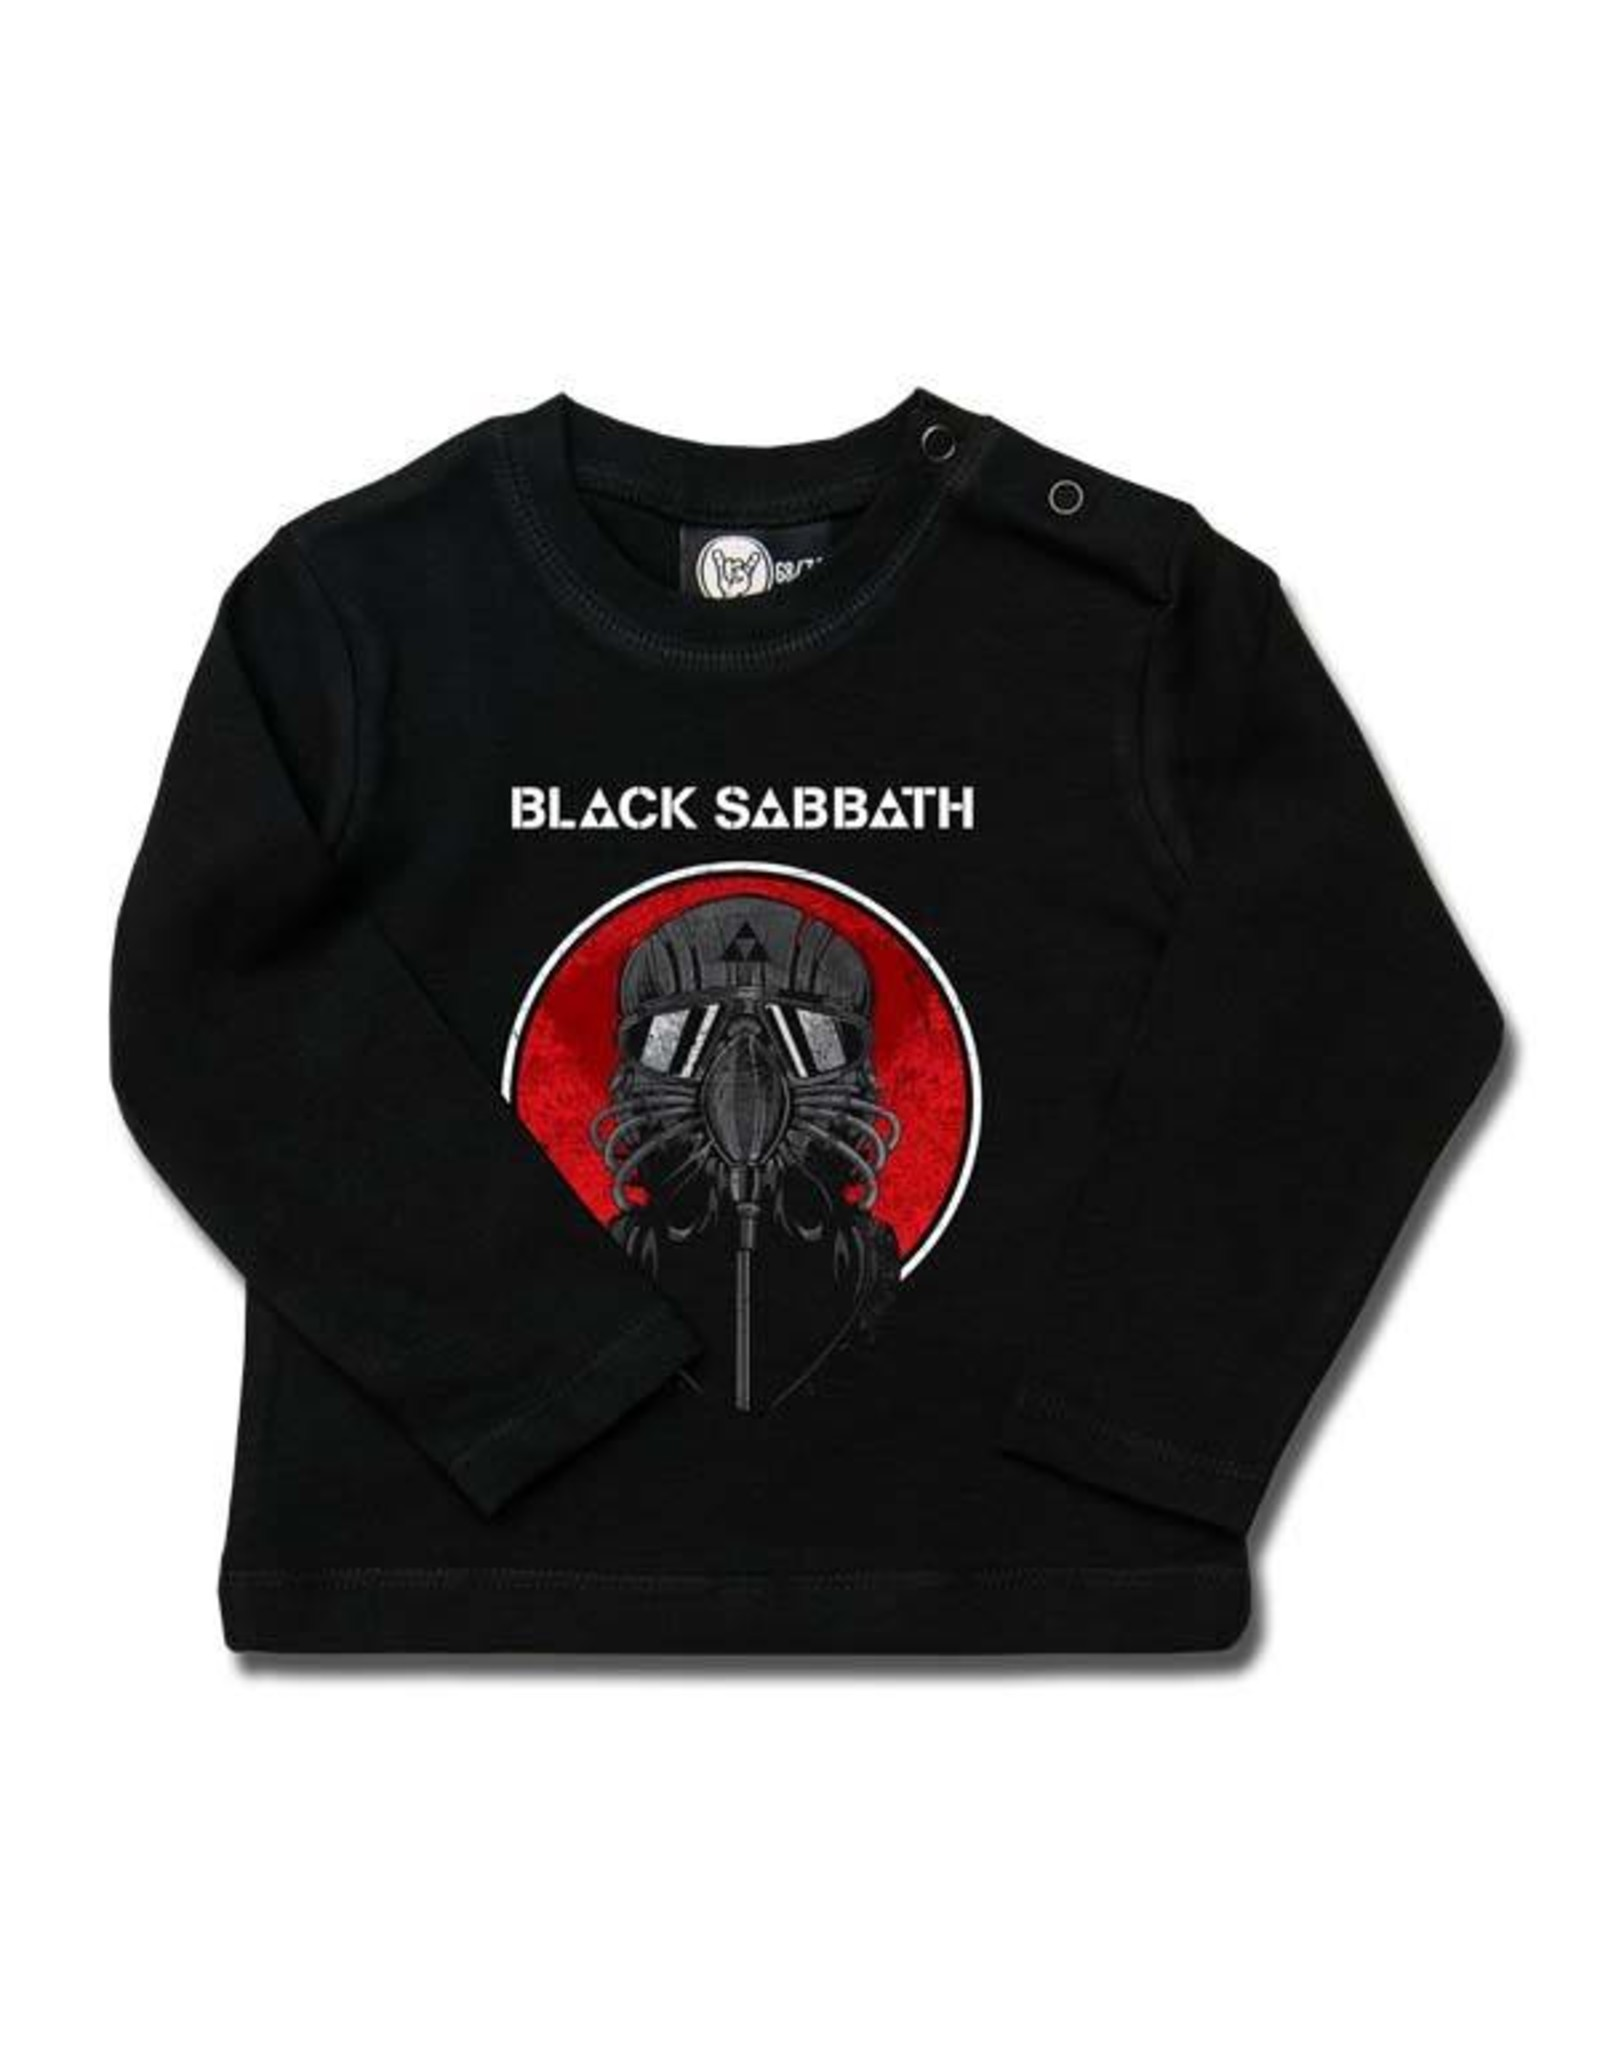 Black Sabbath (2014) - Baby Skater Shirt